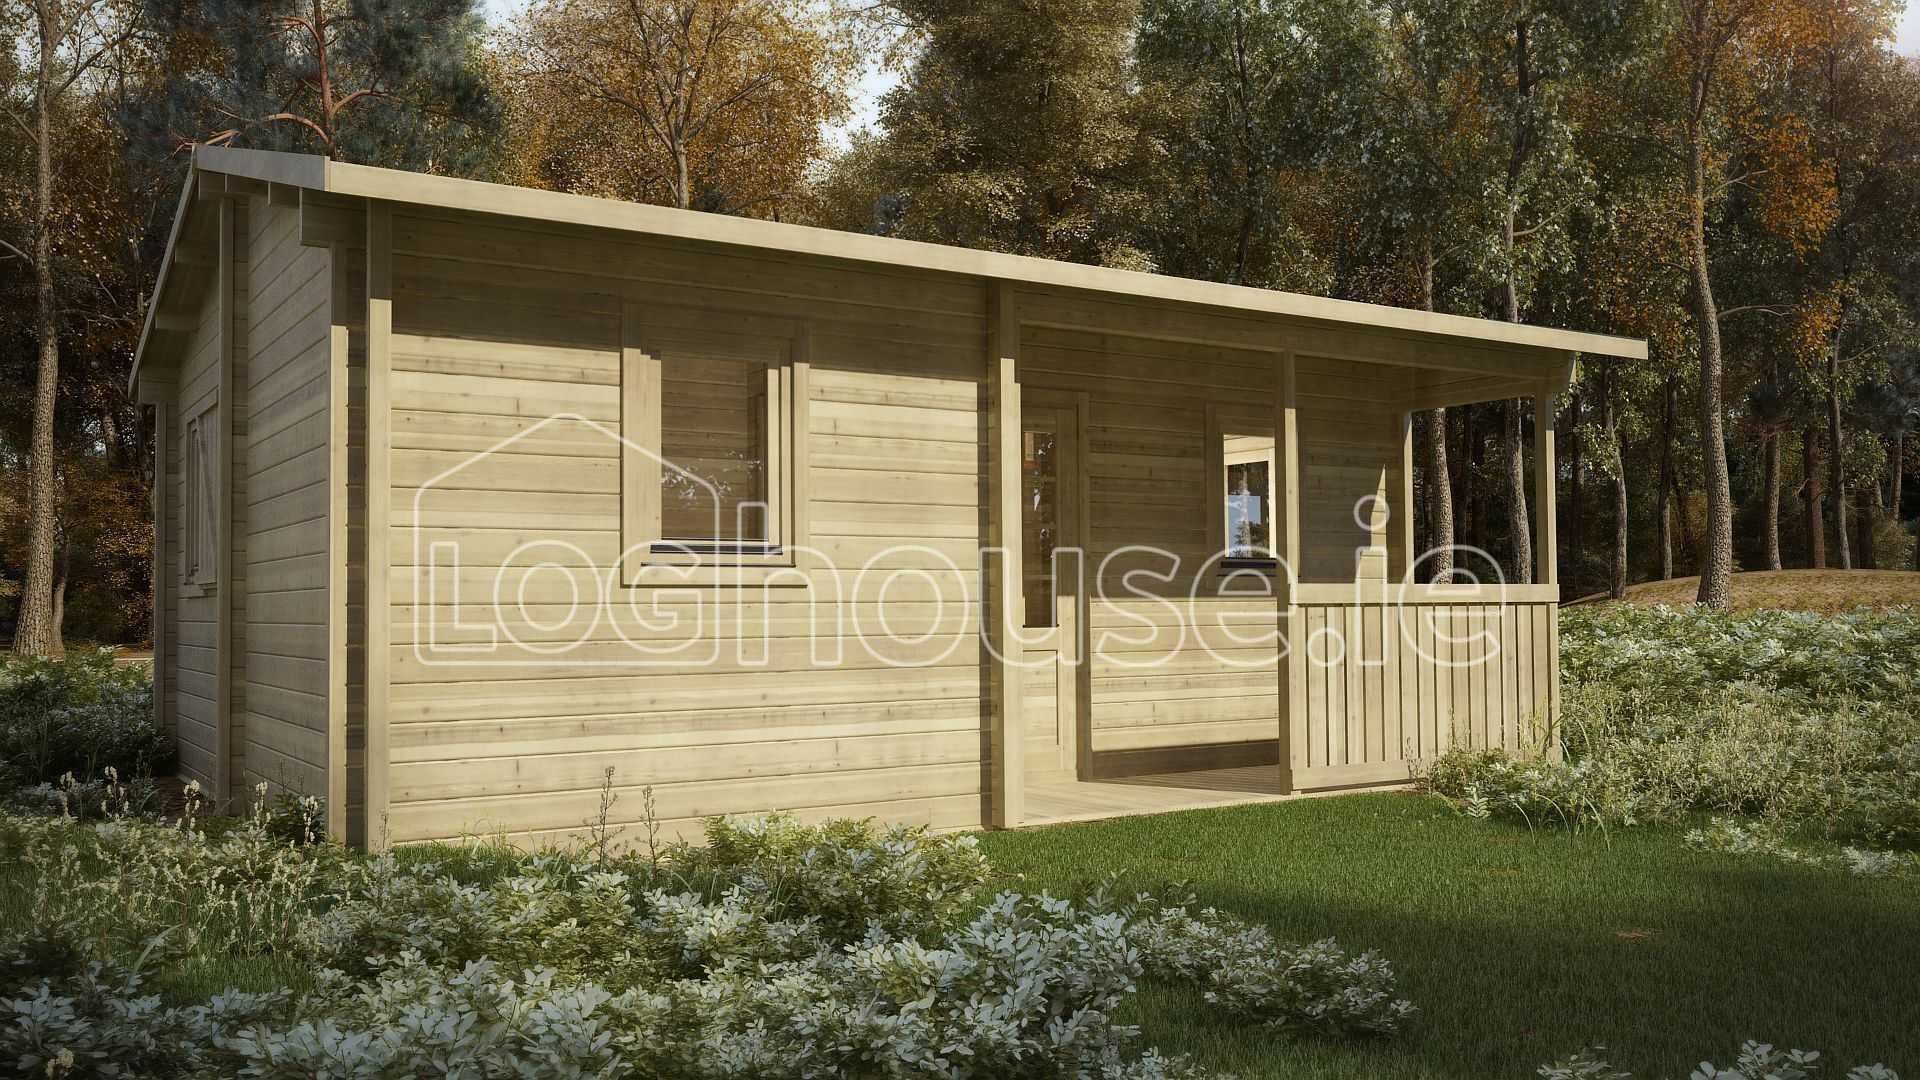 Budget one bed a log cabin x for 4 bed log cabins for sale